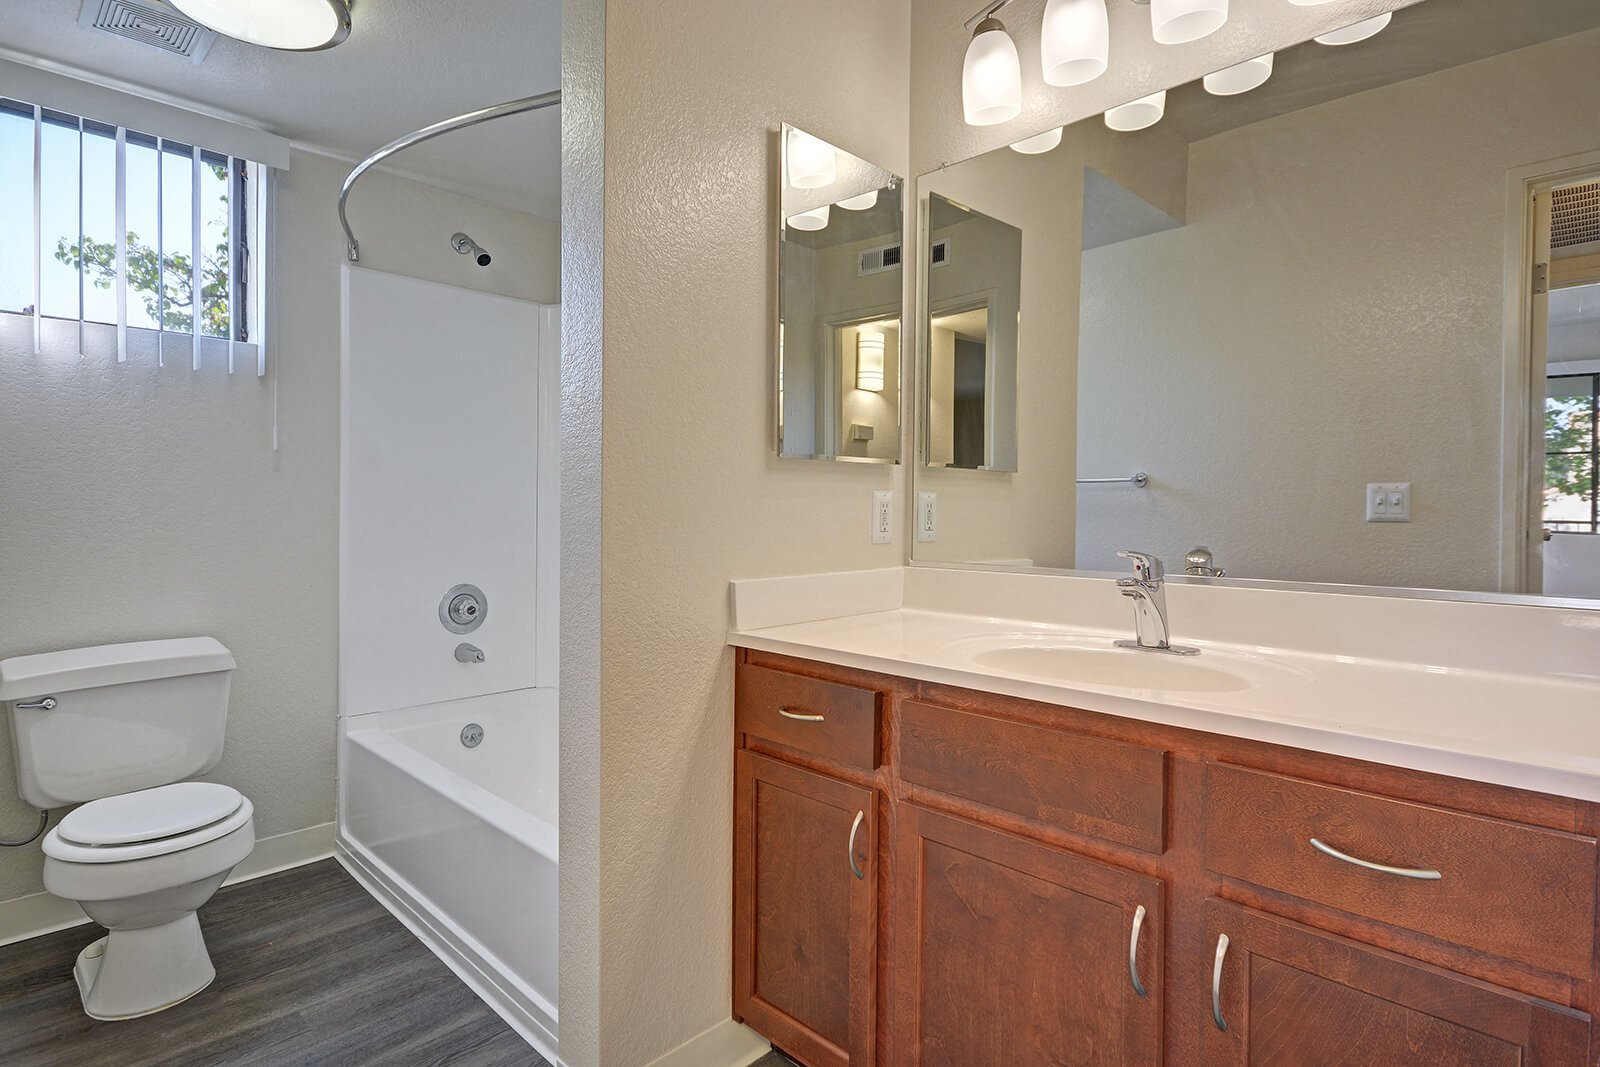 Spacious Bathrooms at Mission Pointe by Windsor, Sunnyvale, 94089